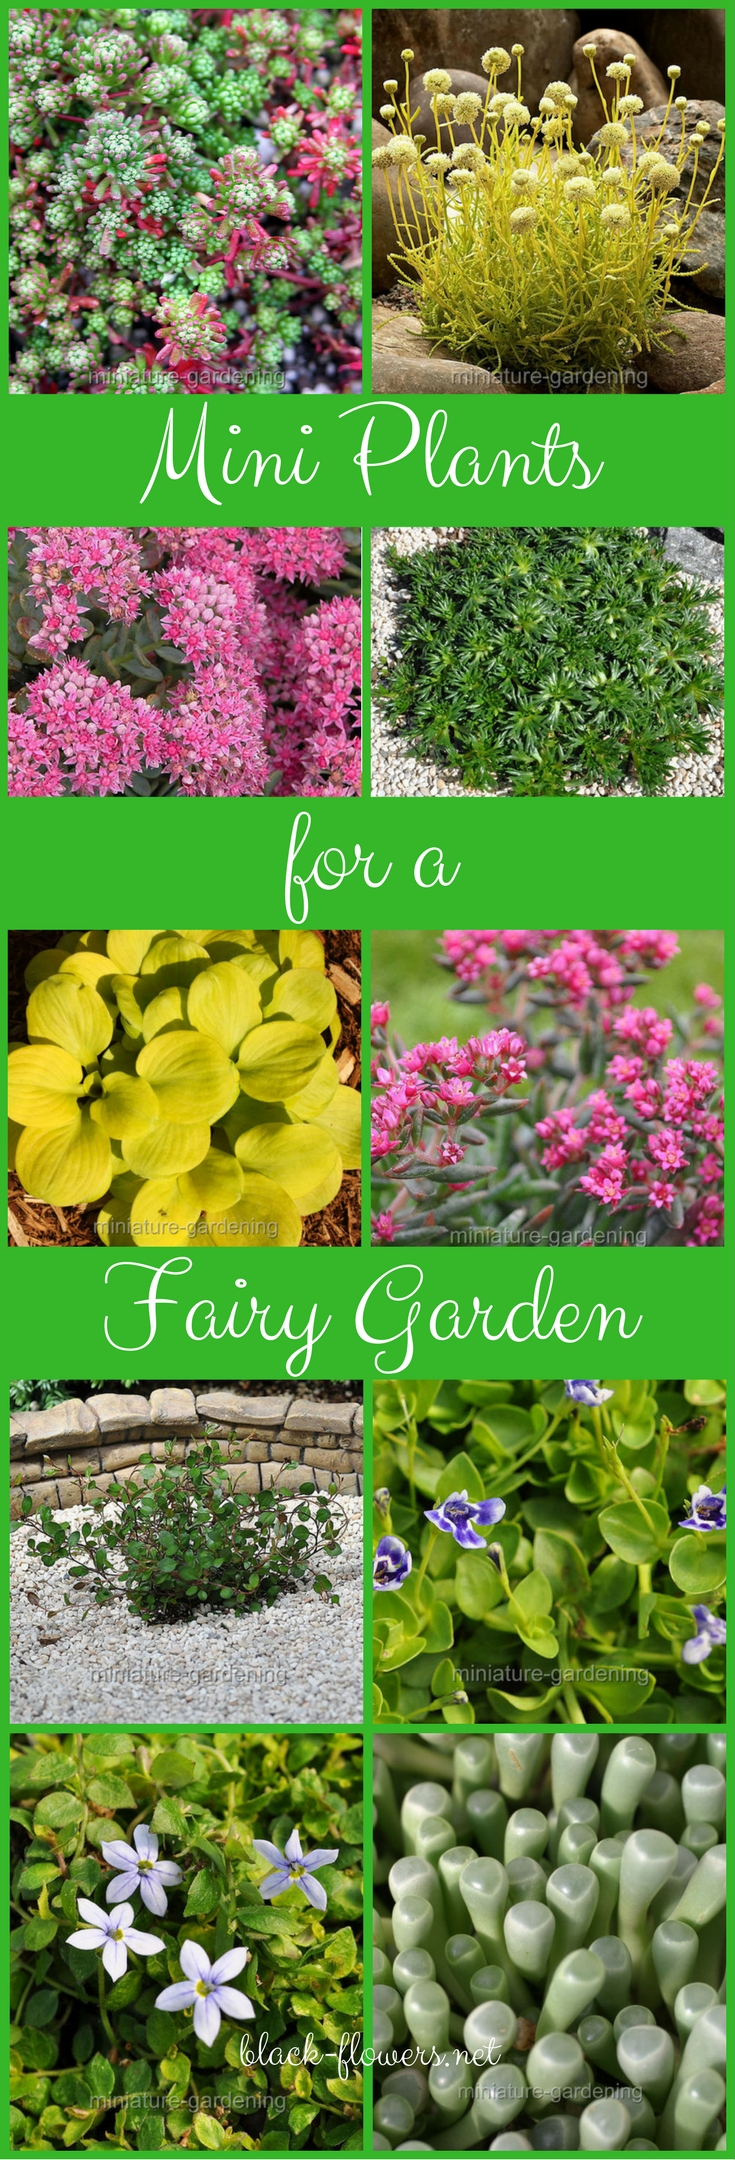 Mini Plants for a Fairy Garden